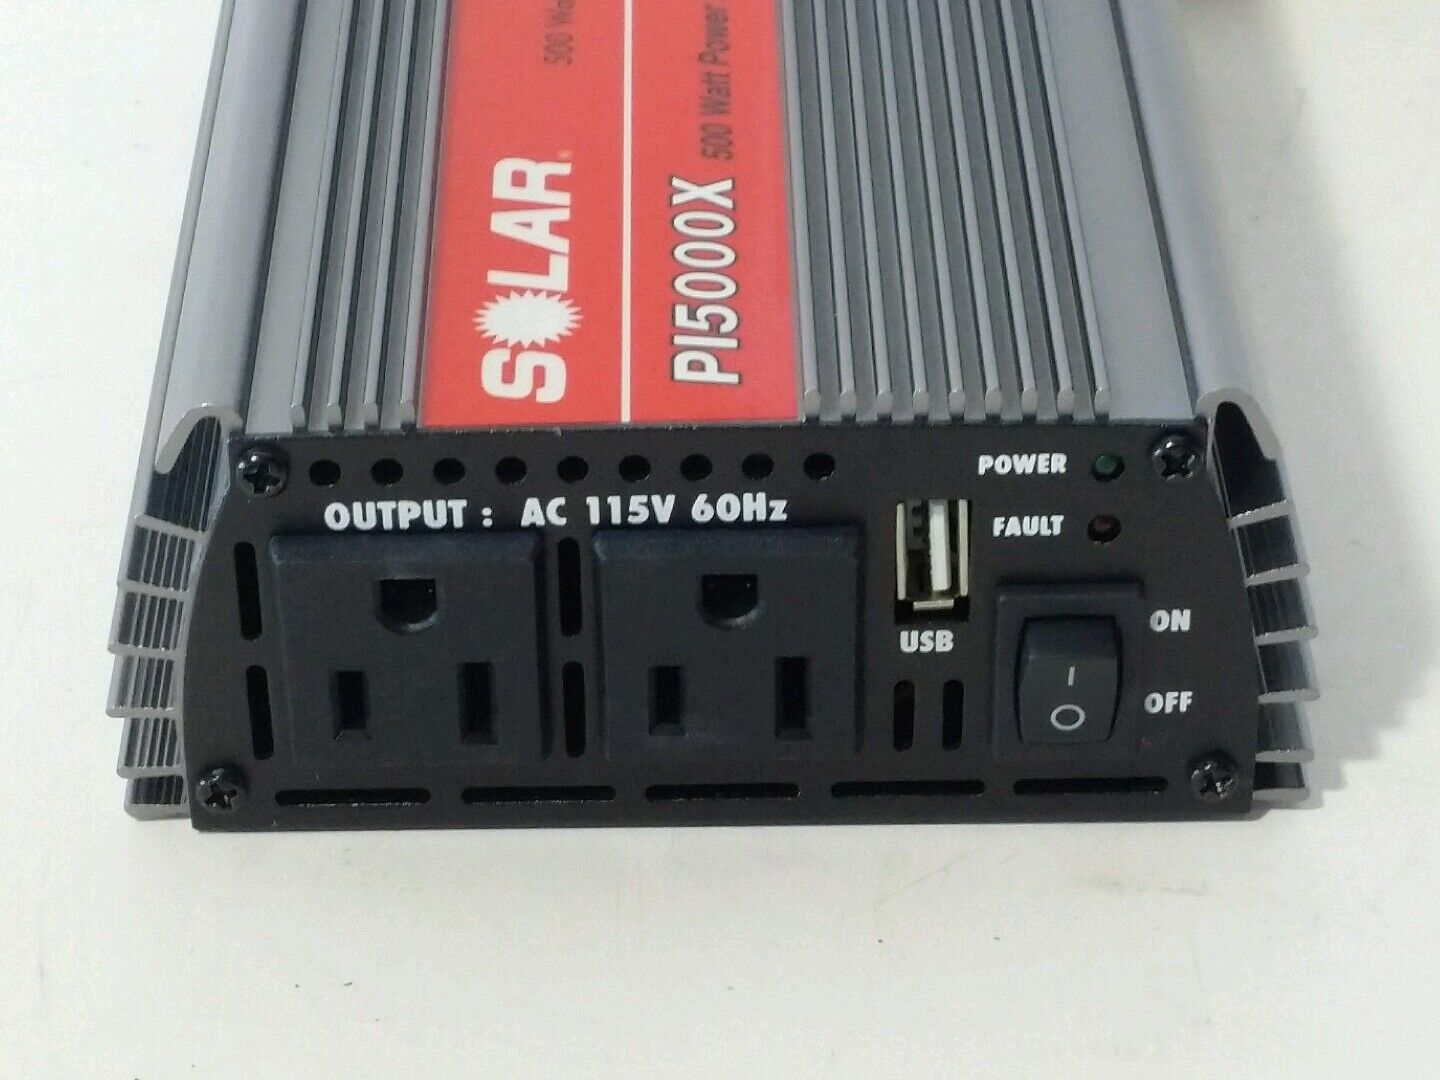 Solar PI5000X 500W Power Inverter with Dual Outlet Plus USB